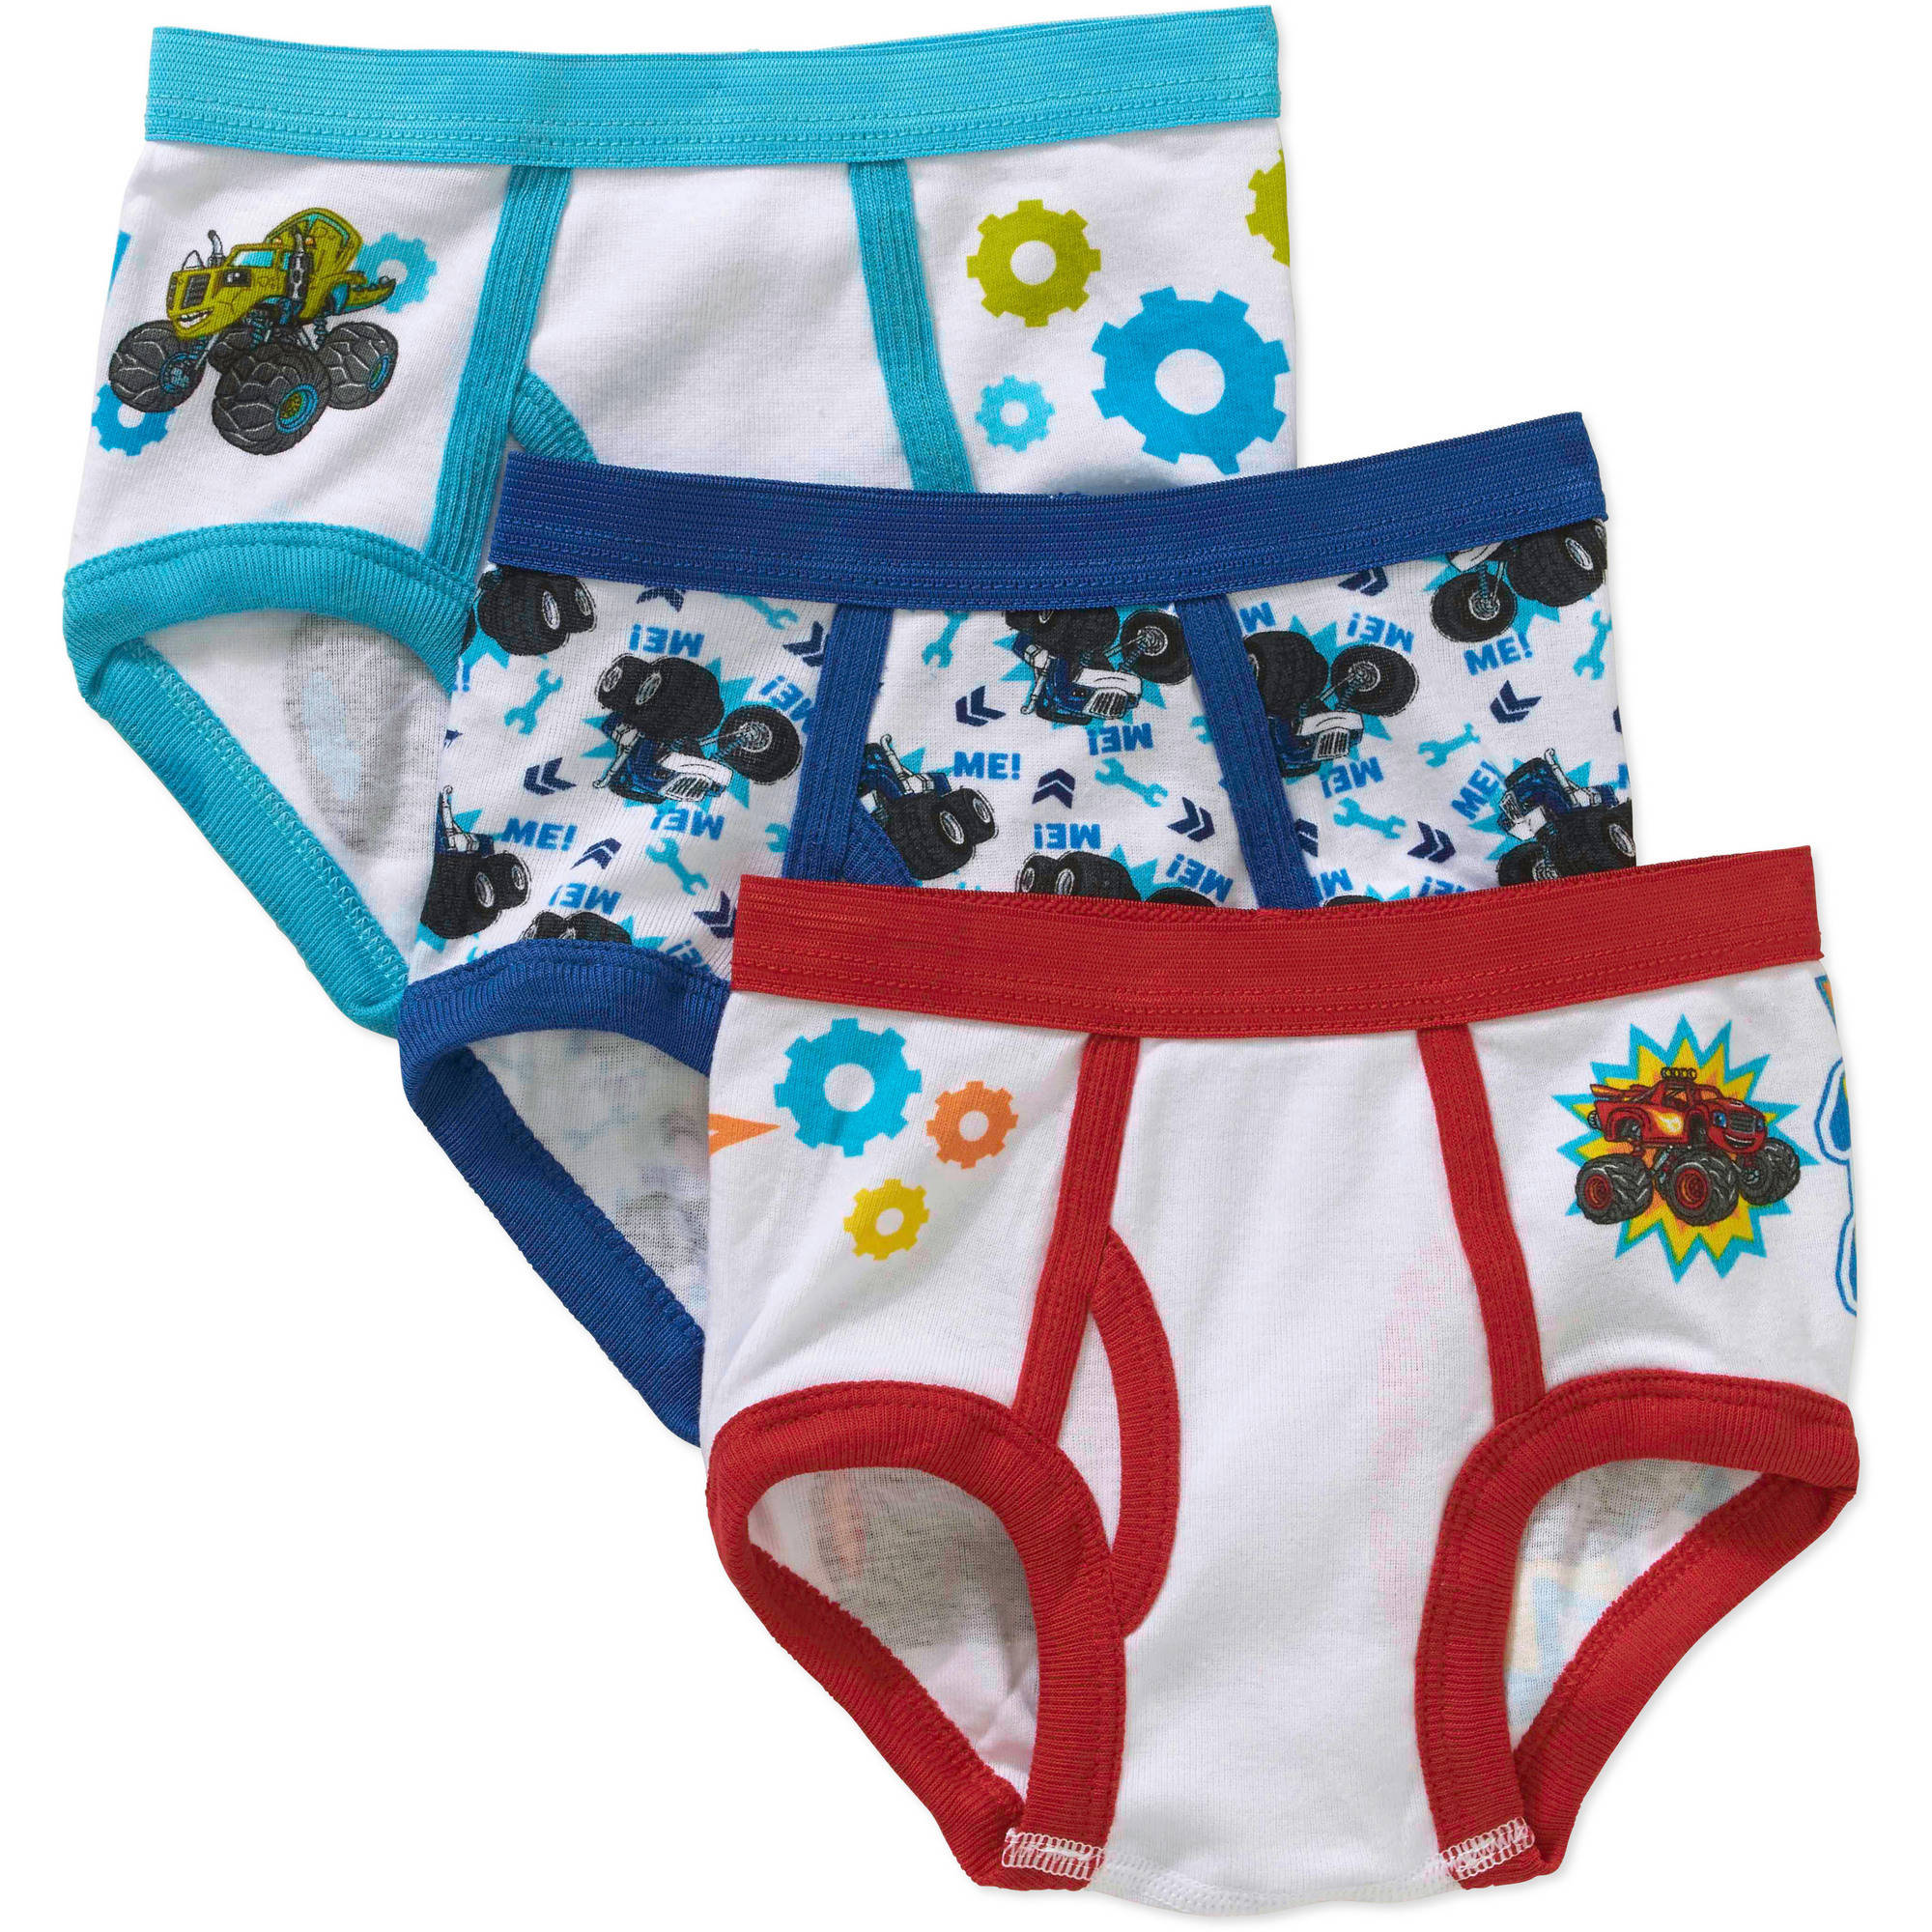 Nickelodeon Blaze Toddler Boys Underwear, 3-Pack